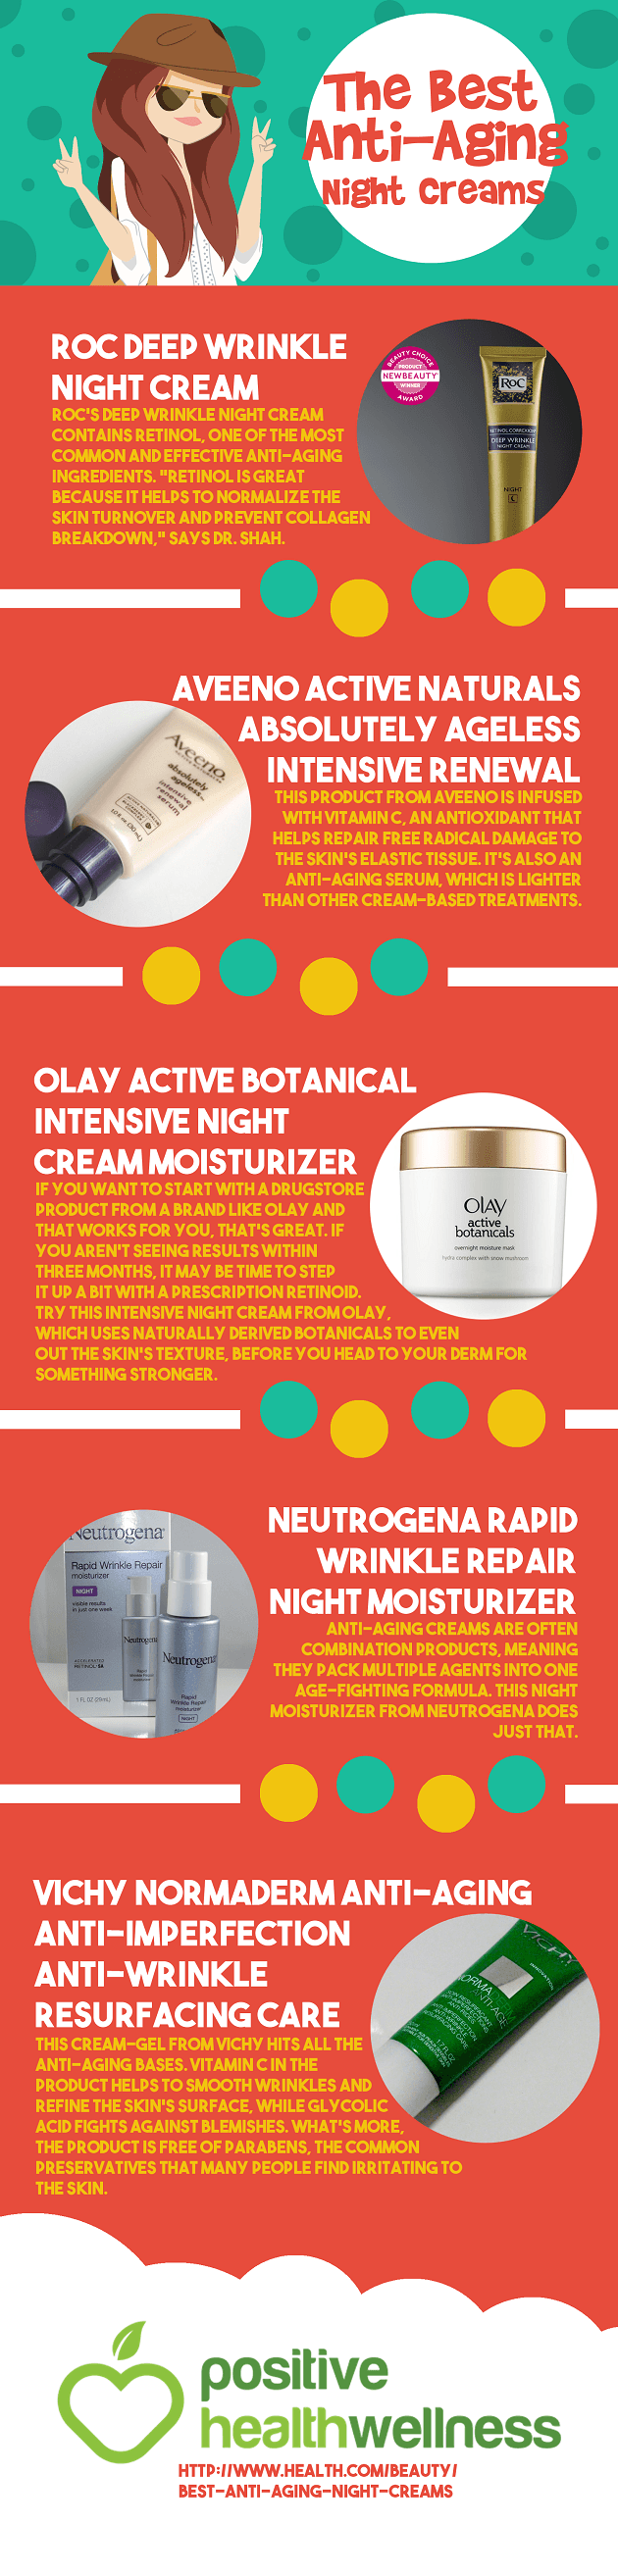 The Best Anti-Aging Night Creams